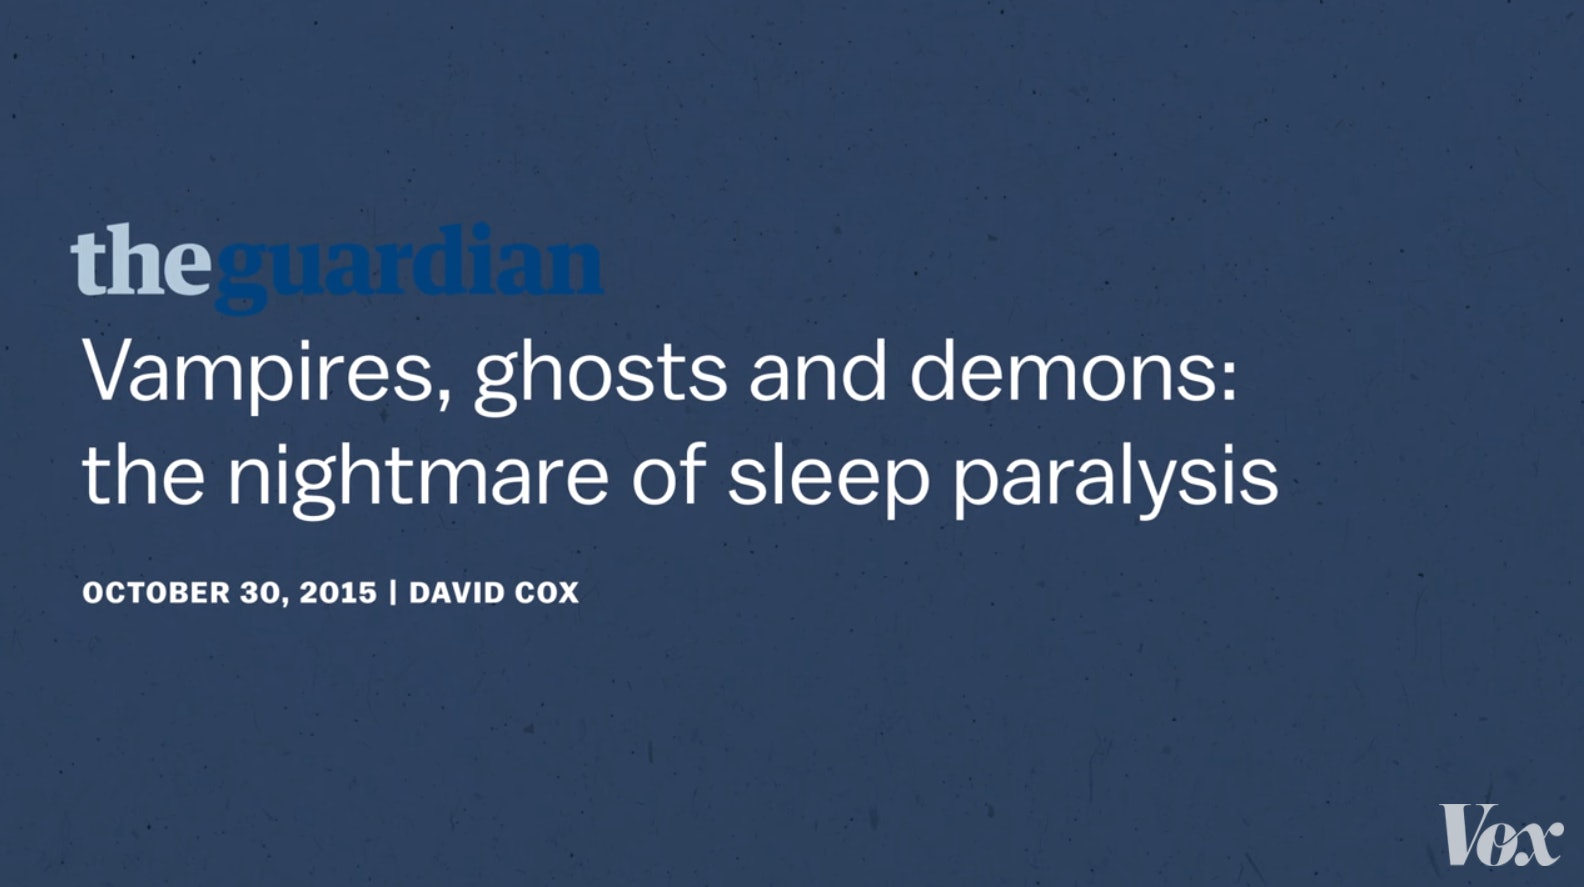 death dreams and ghosts